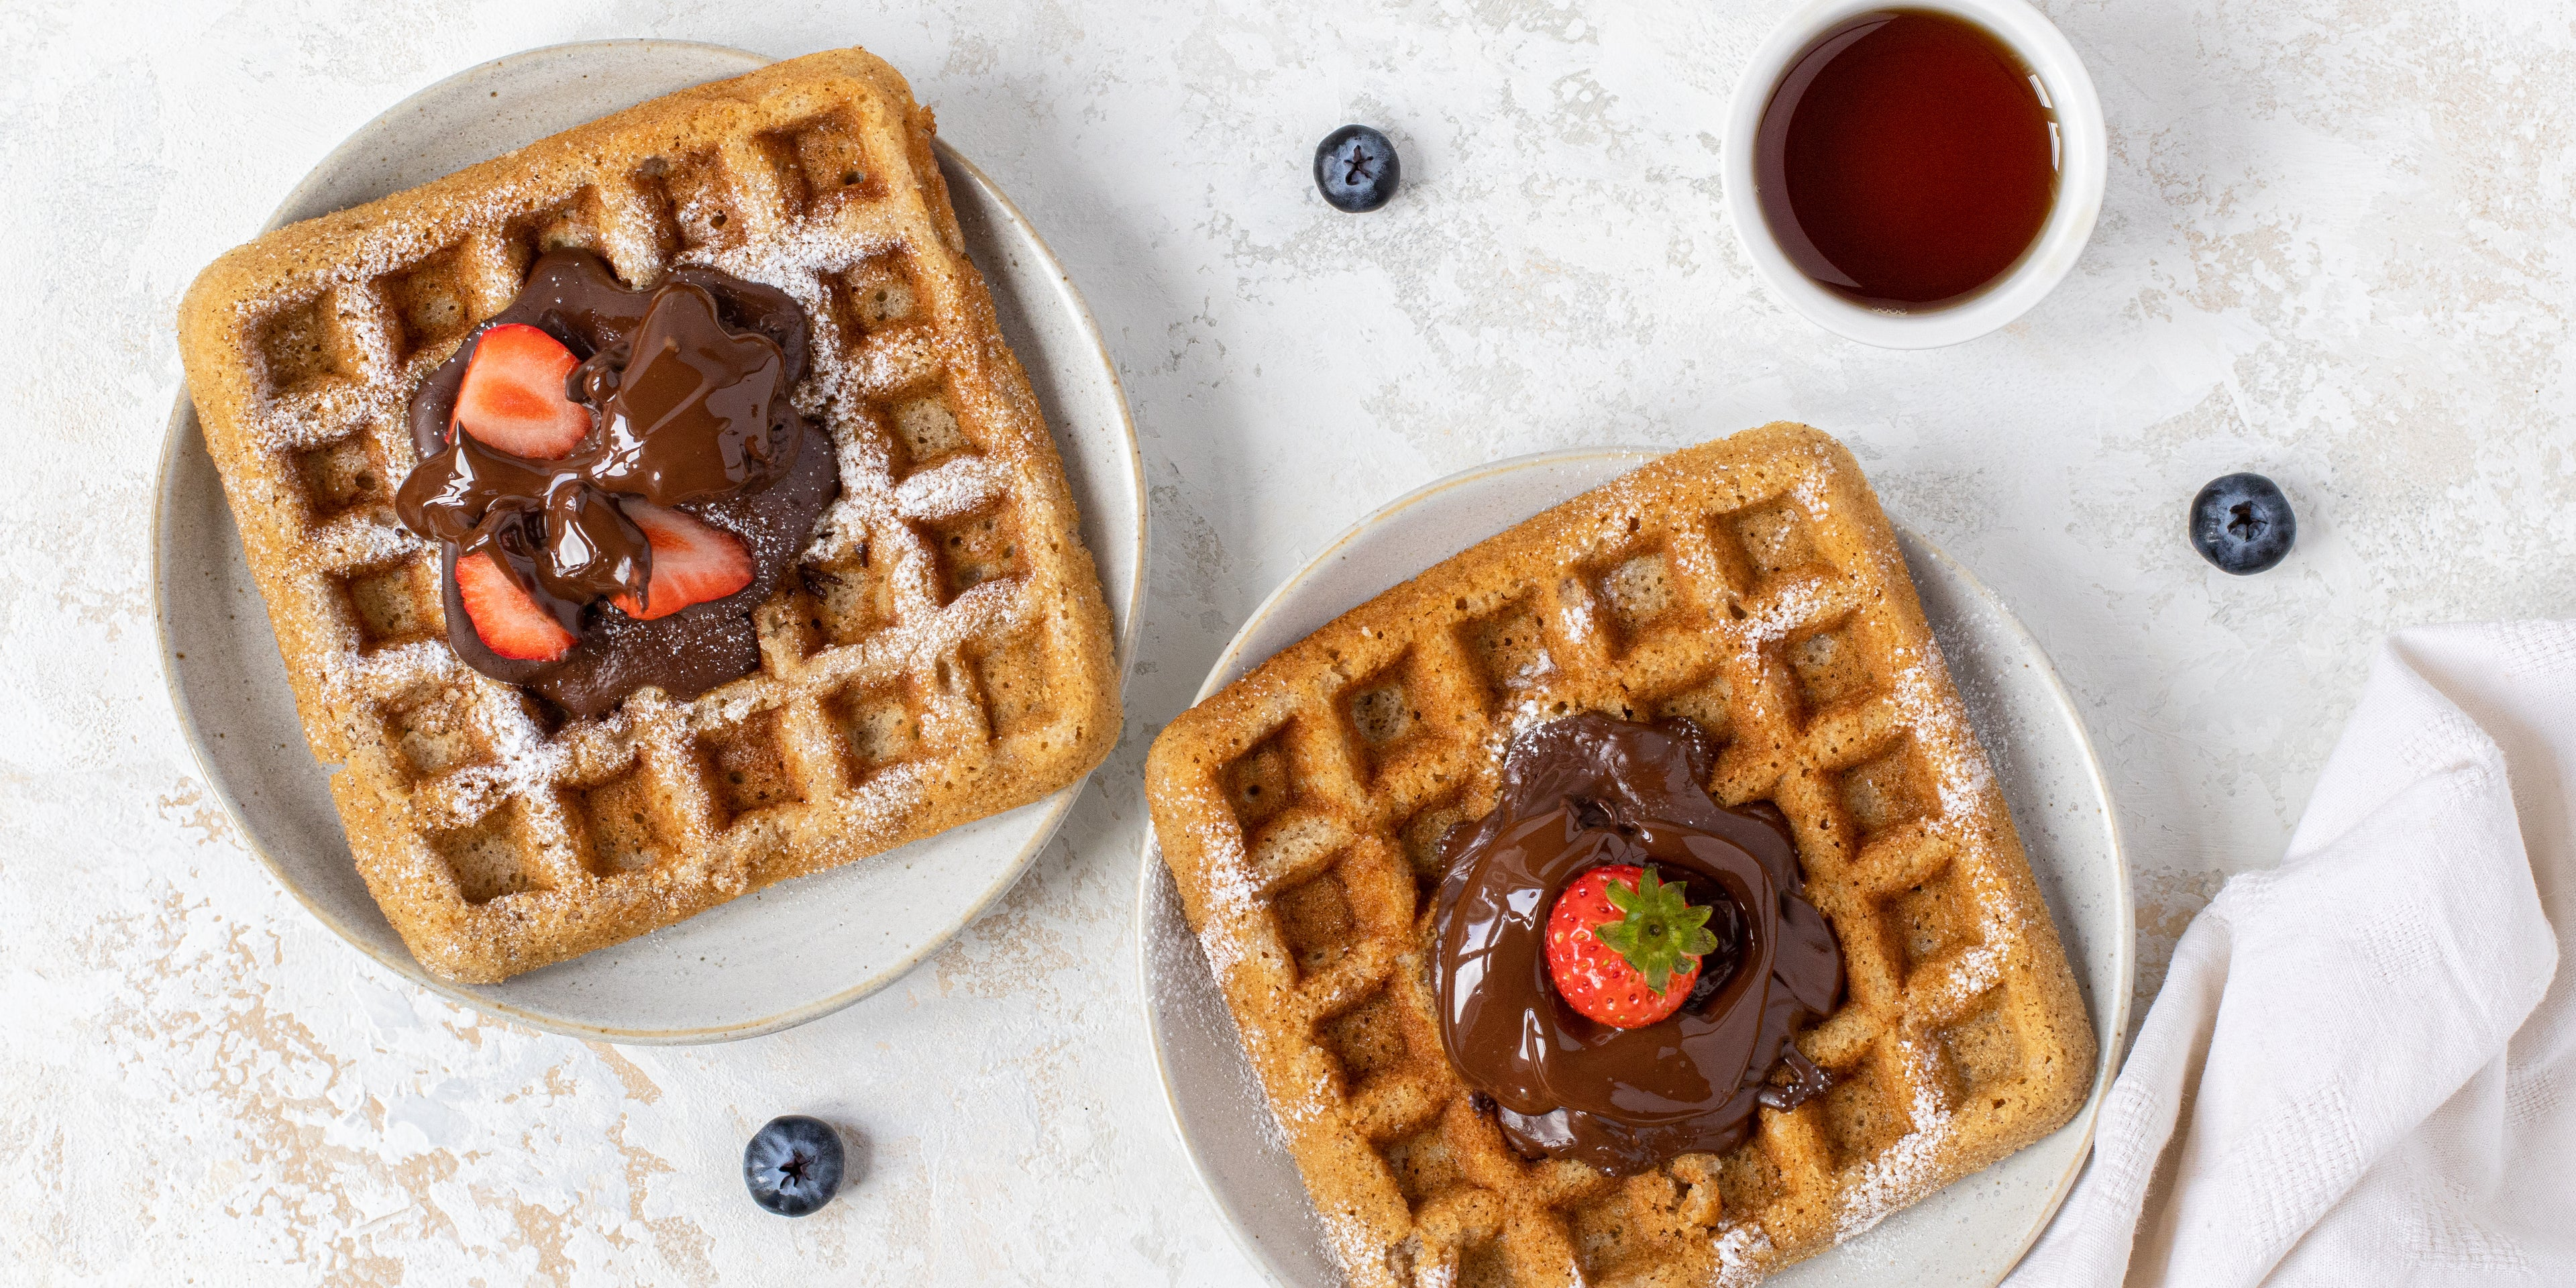 Top view of Waffles dusted in icing sugar, topped with chocolate sauce and strawberries